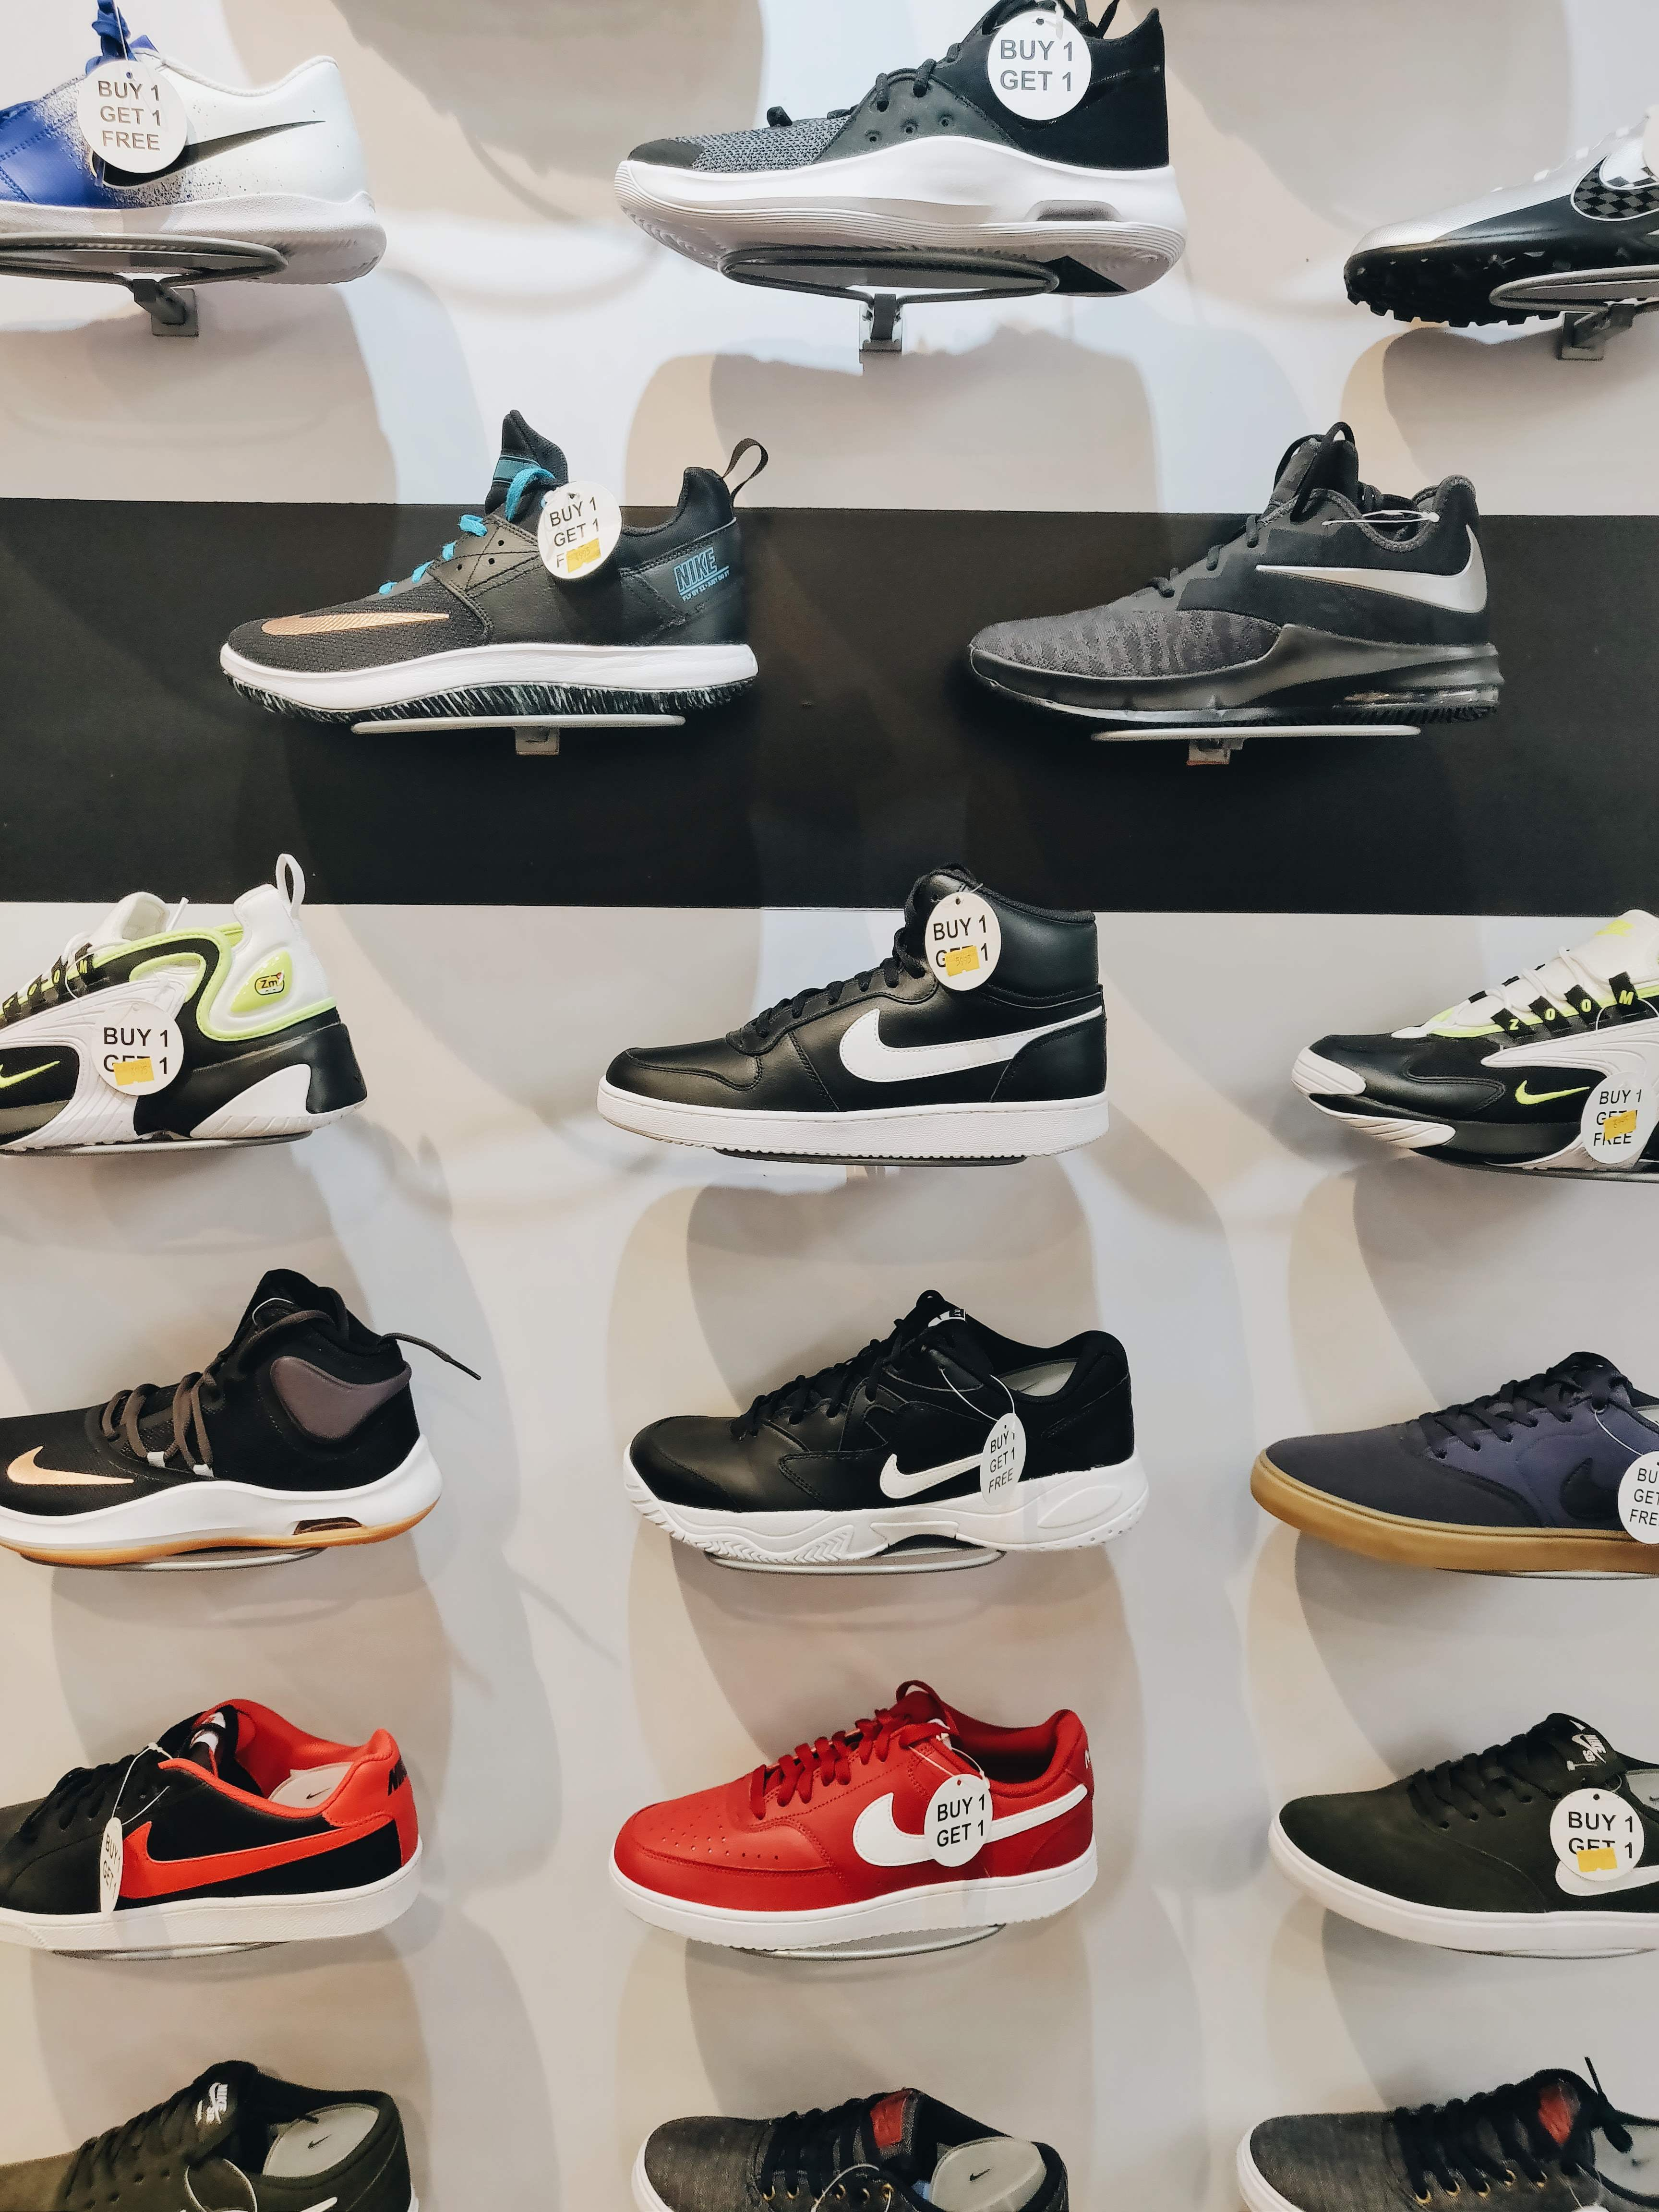 Nike Factory Outlet For Great Deals